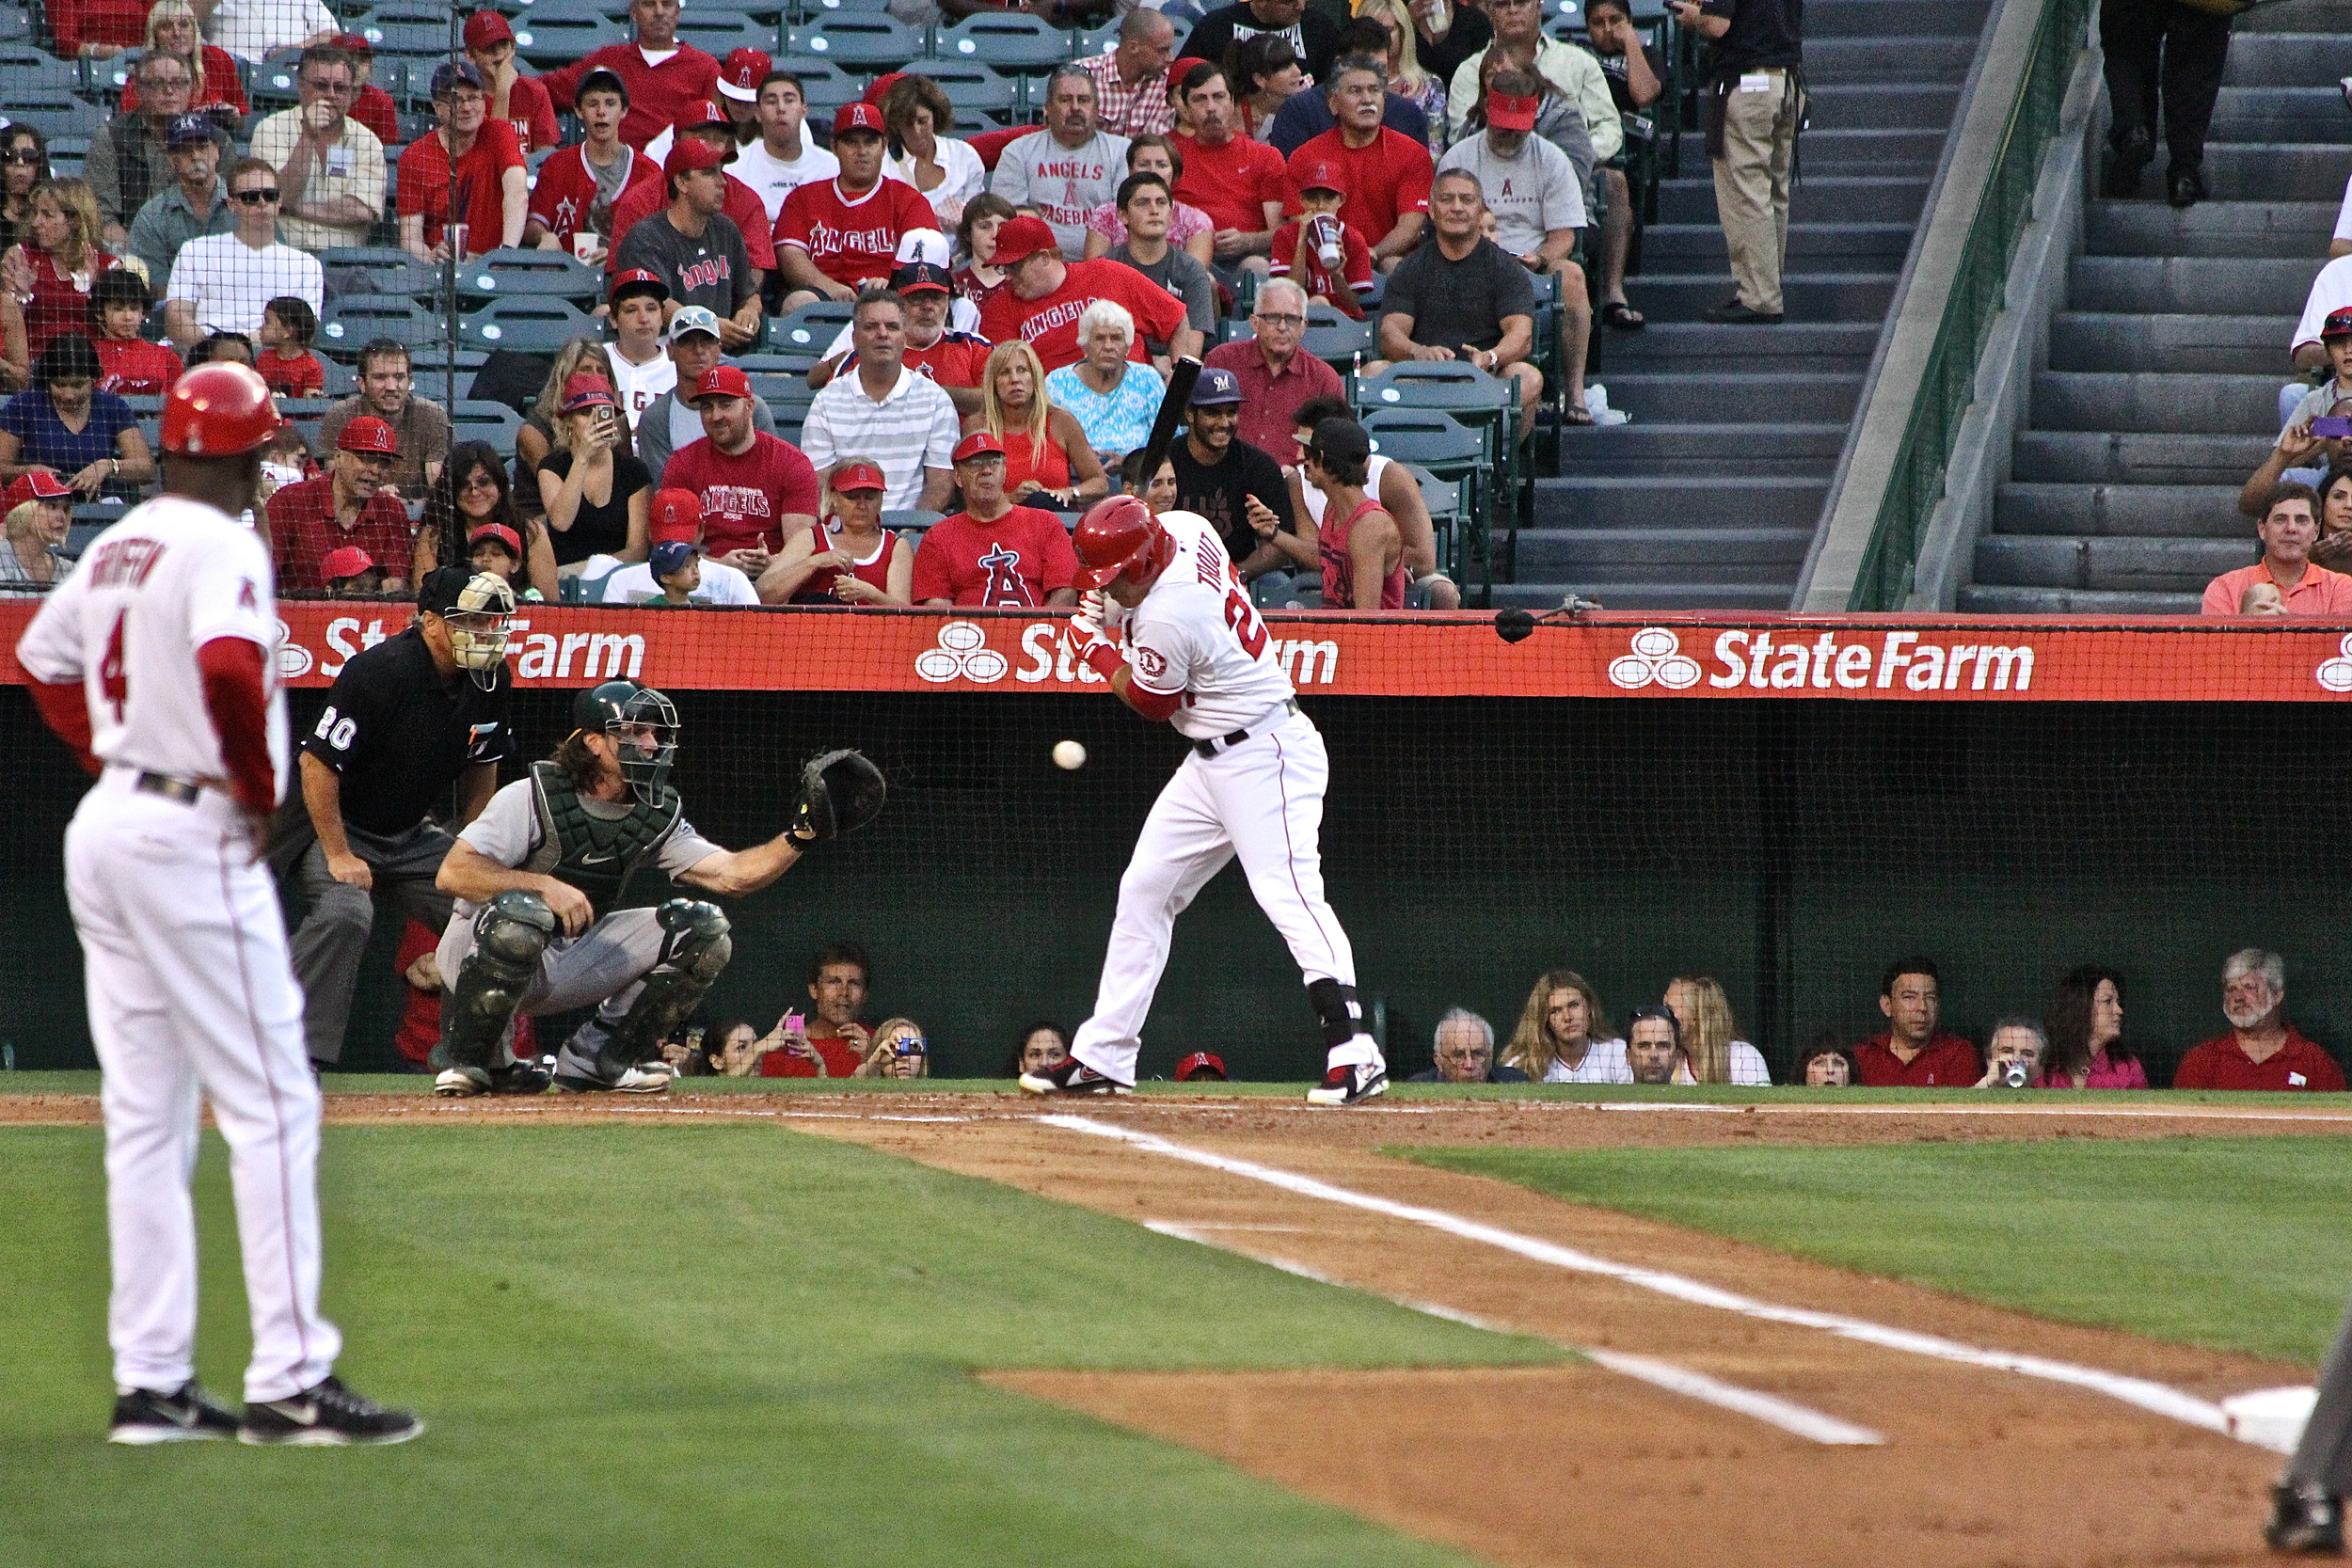 Inside pitch on Mike Trout